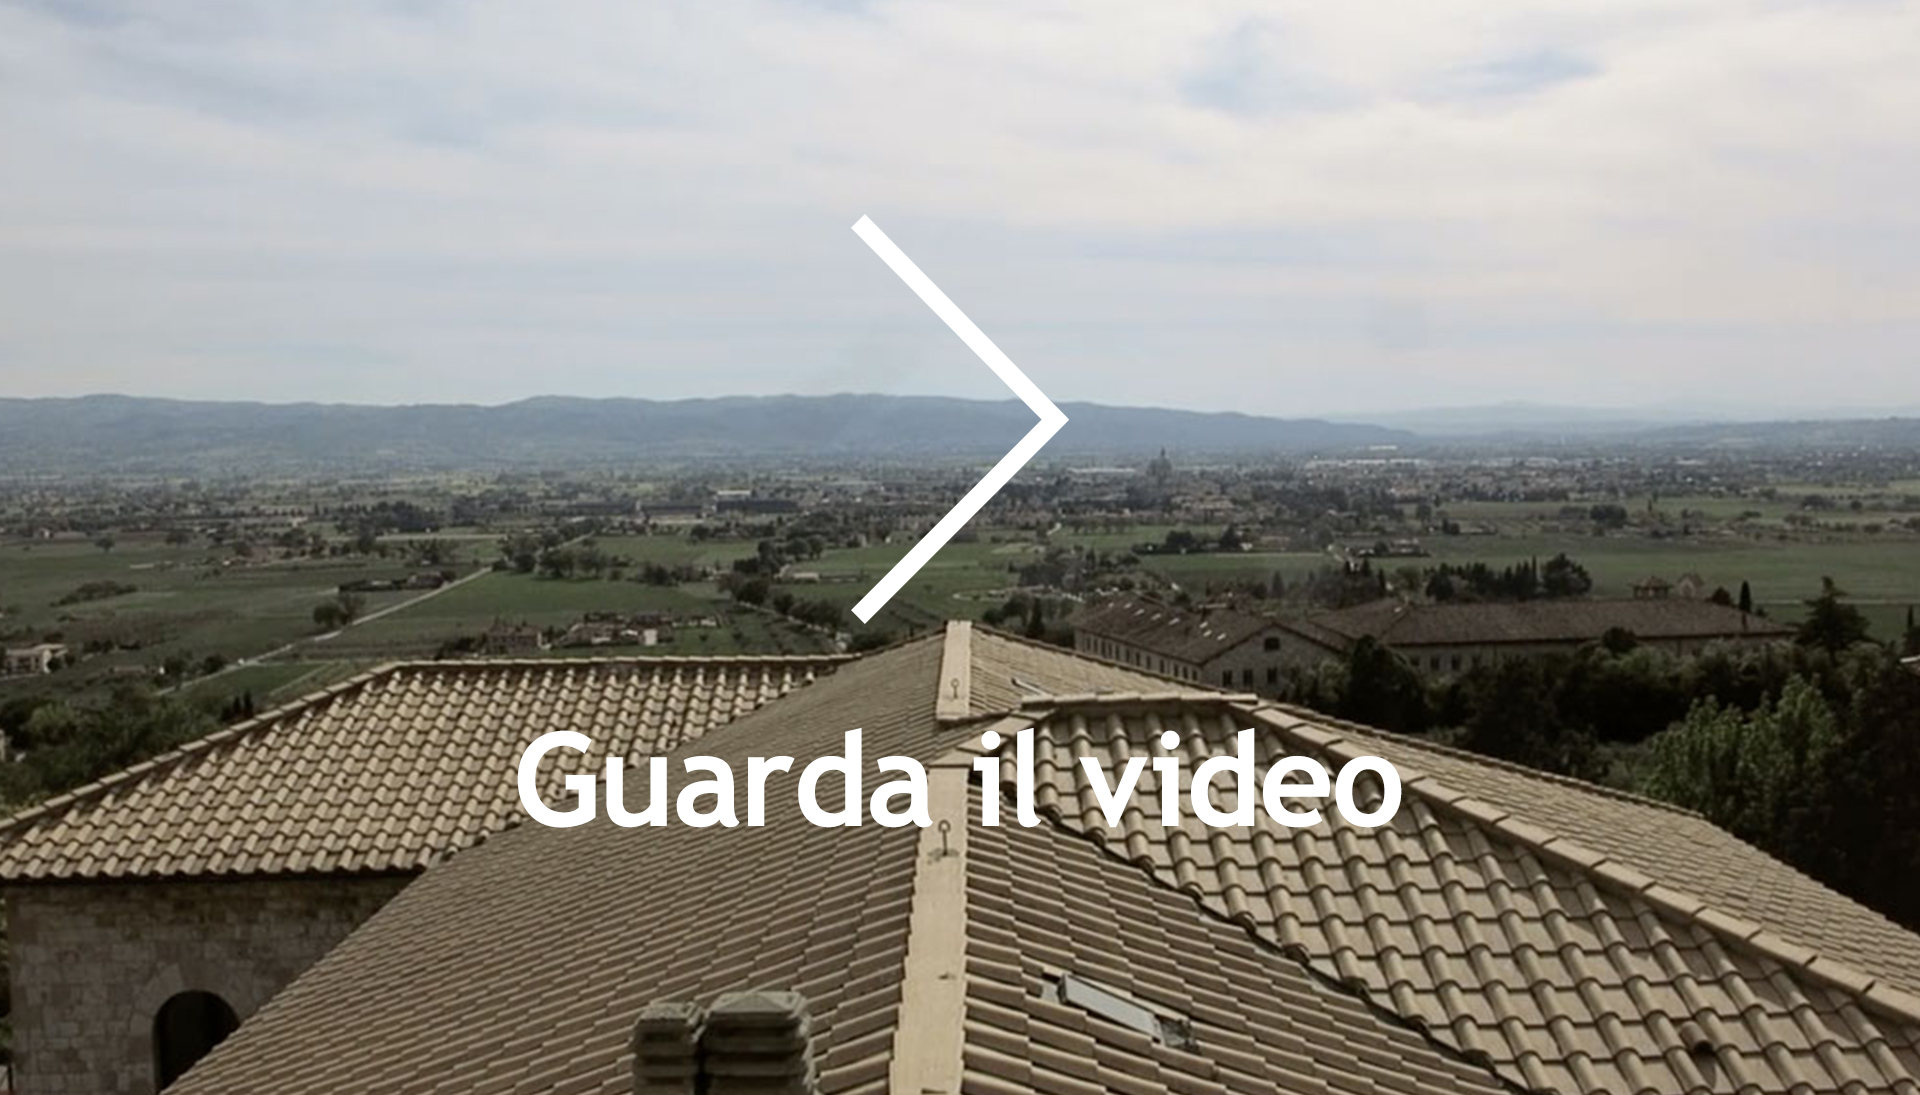 About Agency - Istituto Serafico video- The Prosumer Agency